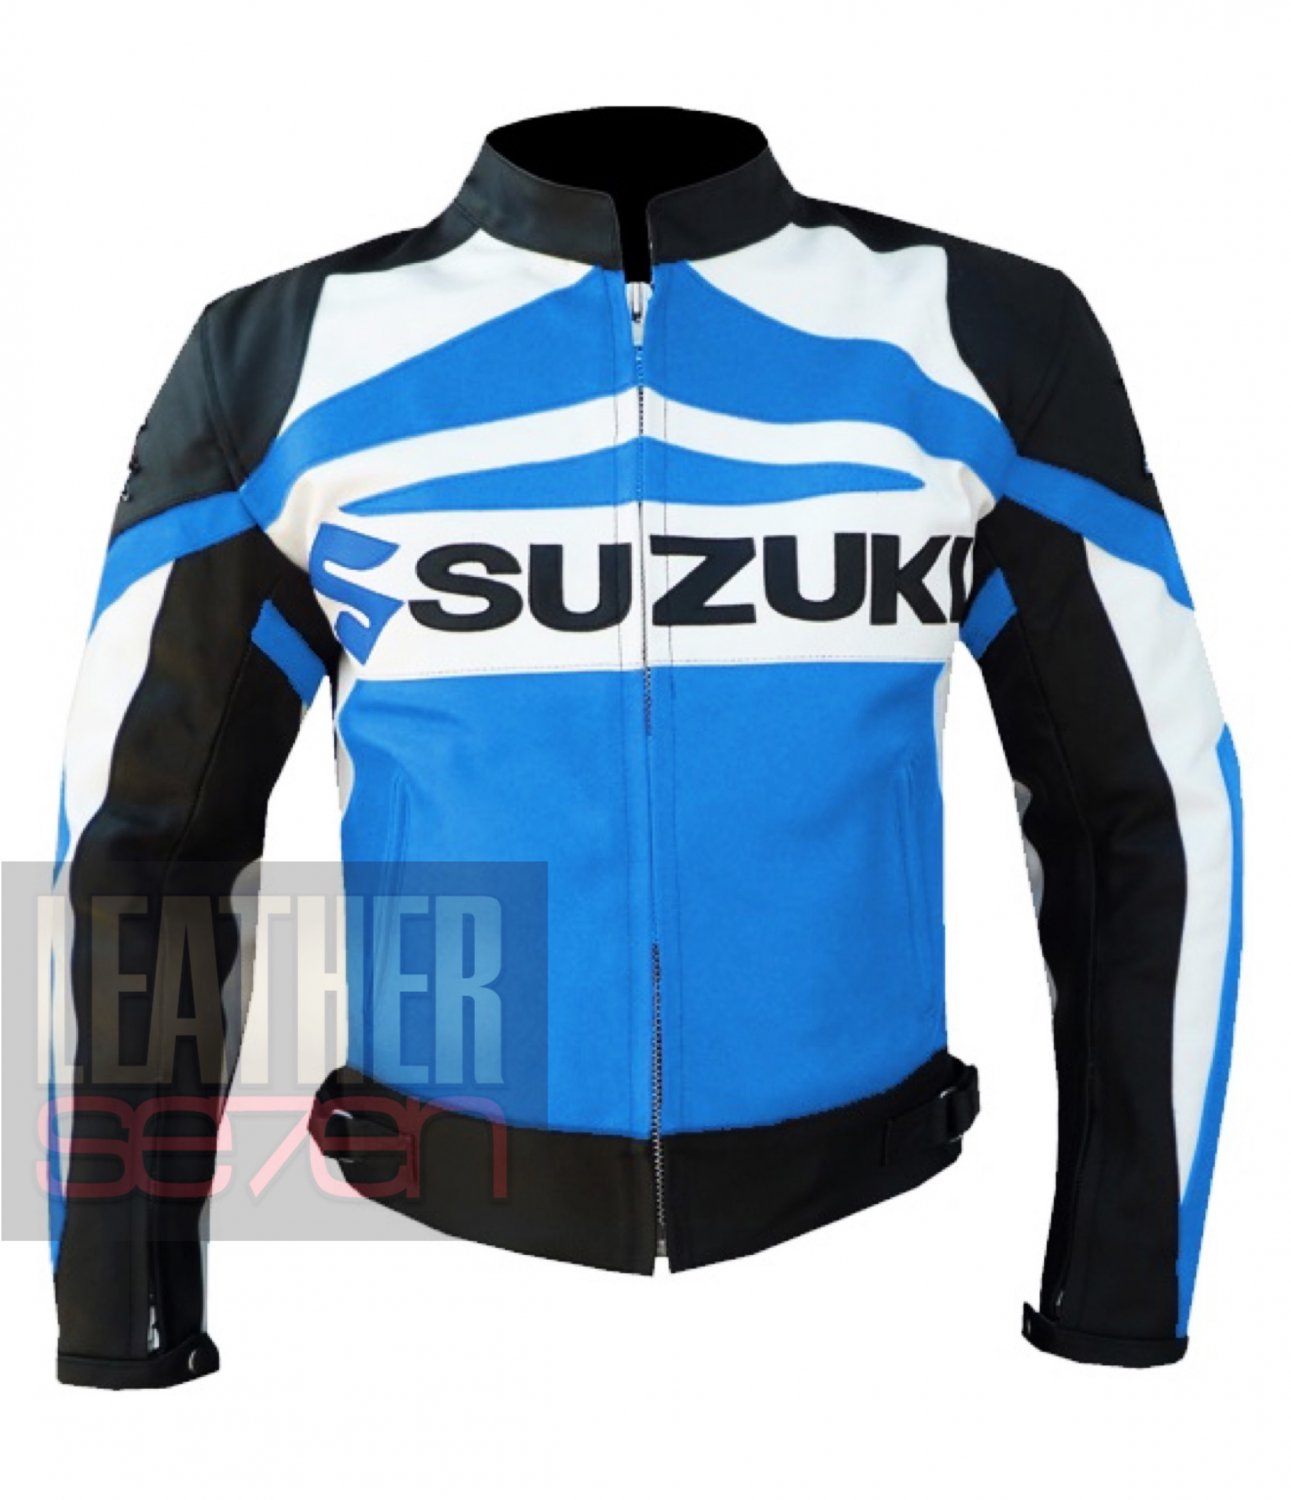 New Best Collection Cowhide Leather Safety Racing Jacket Suzuki GSX Sky Blue